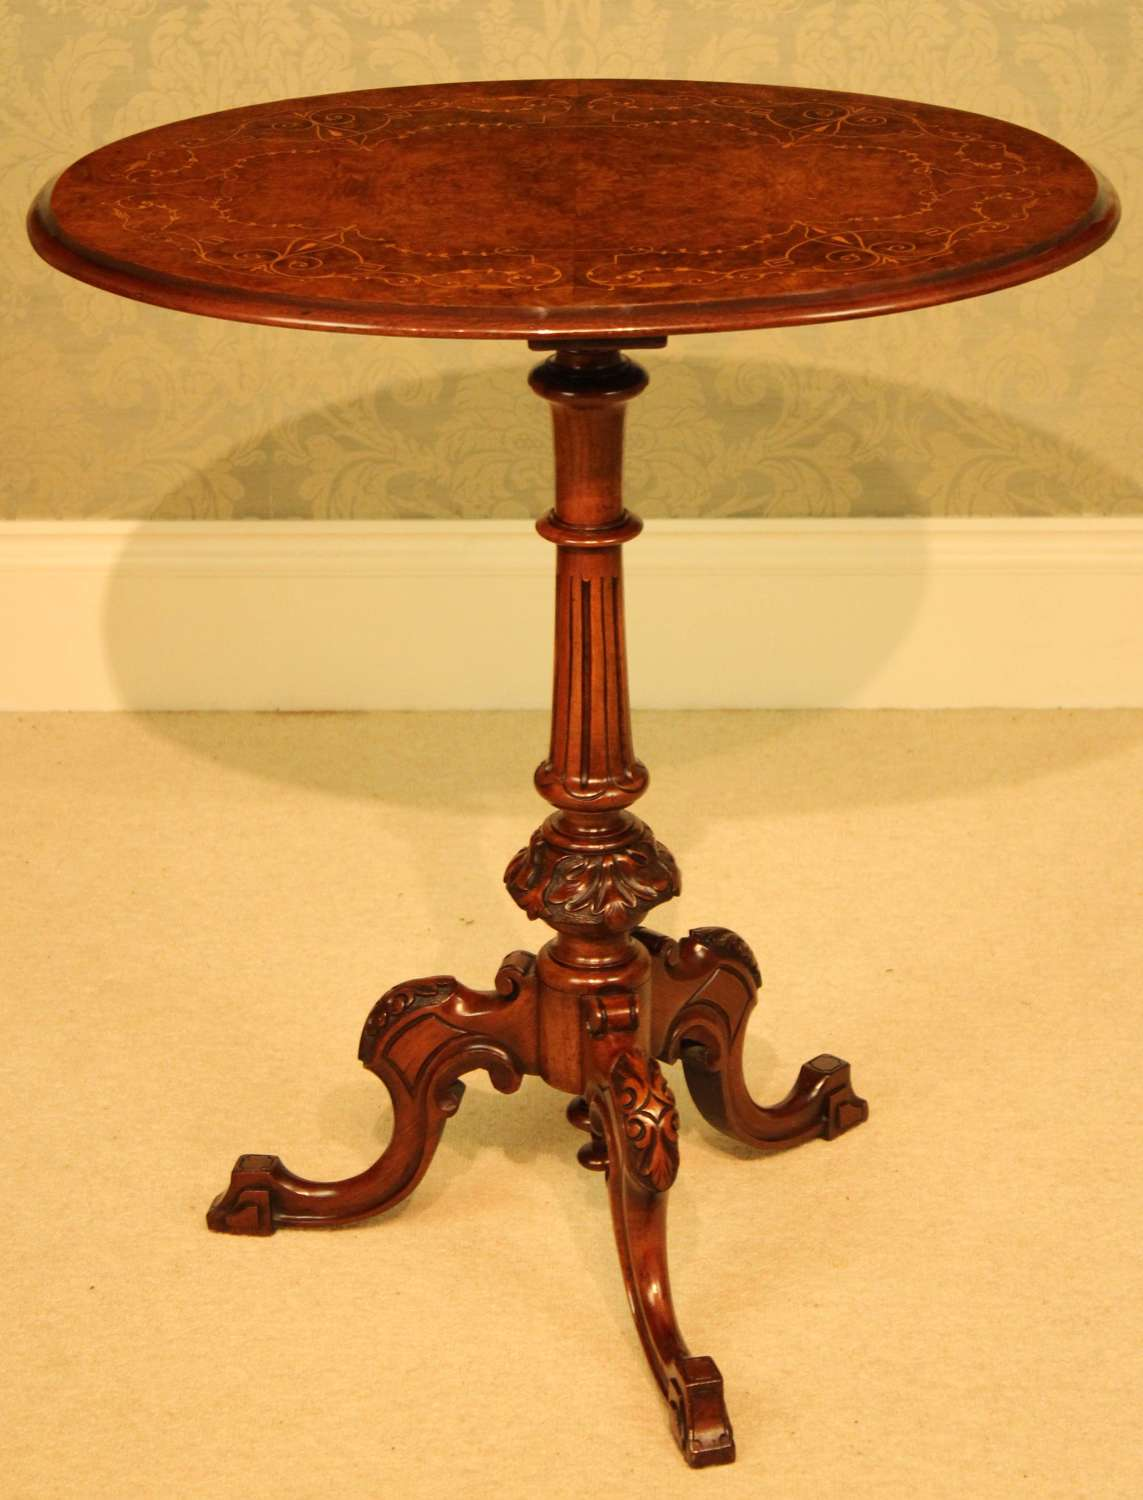 A Fine Quality Victorian Burr-Walnut Inlaid Oval Tripod Table